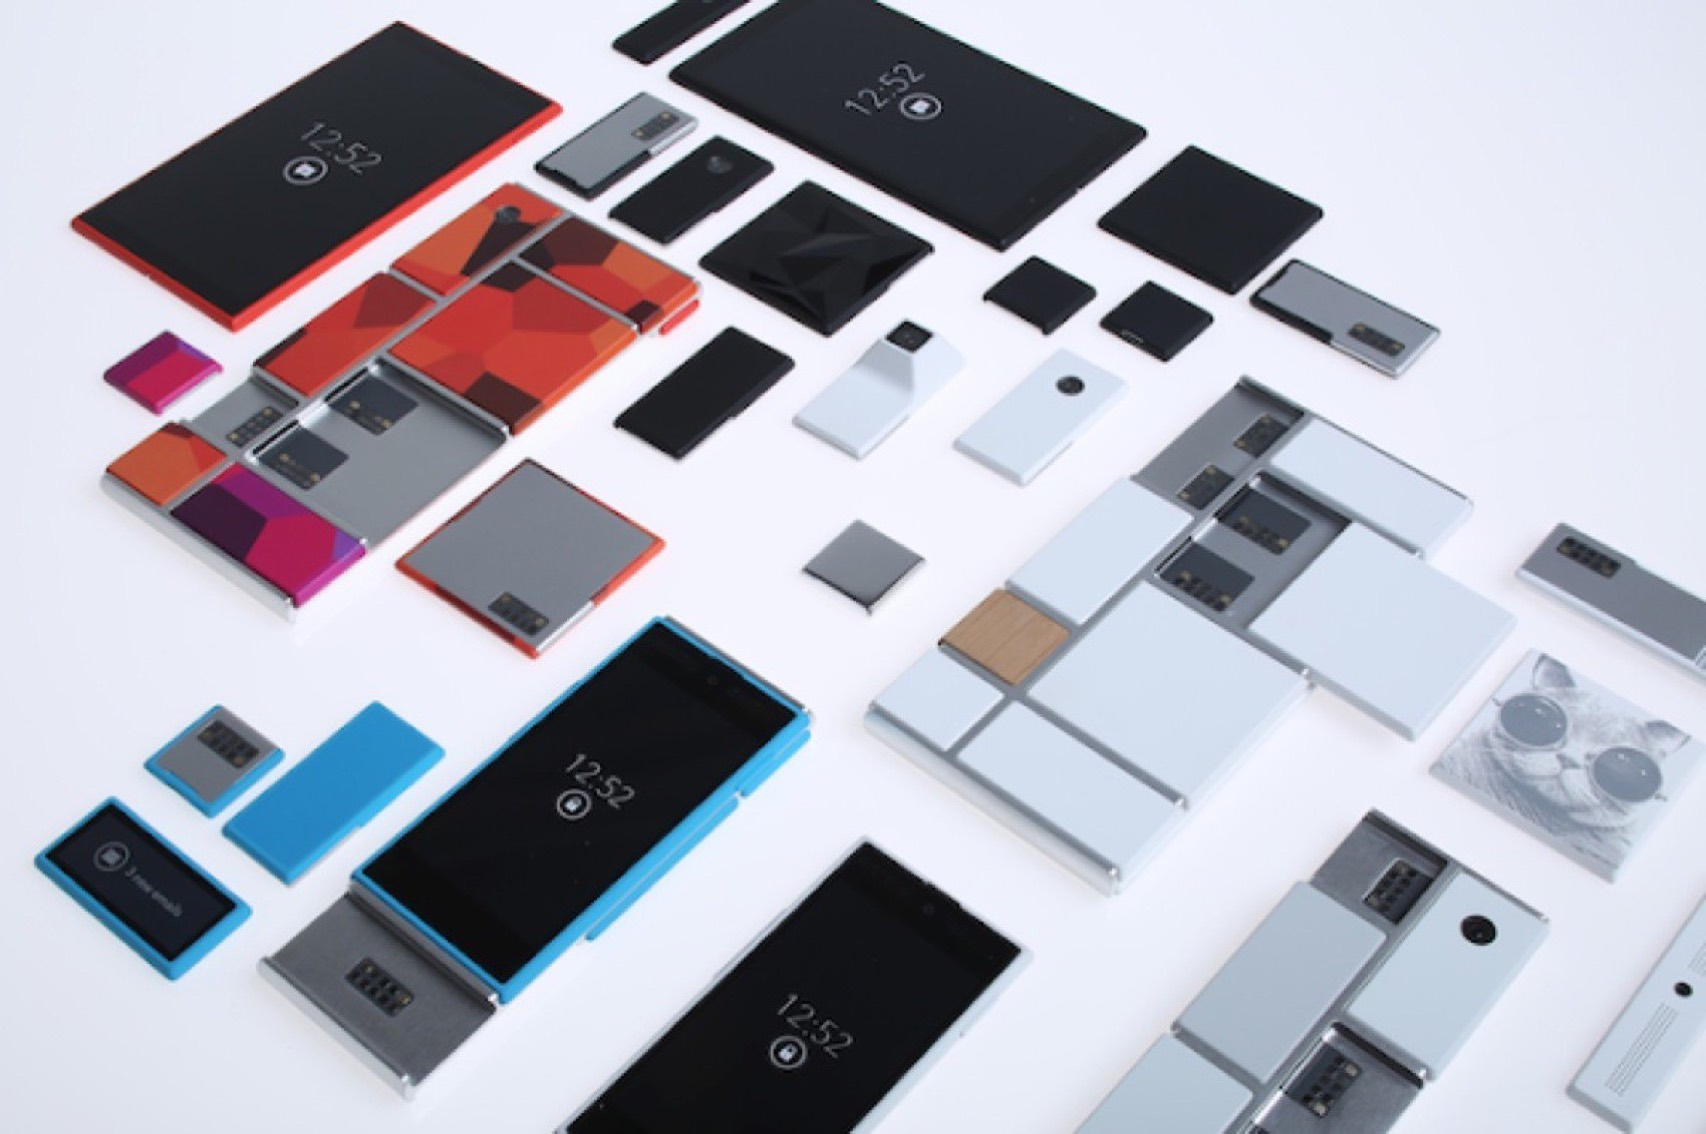 Google shelves plan for phone with interchangeable parts